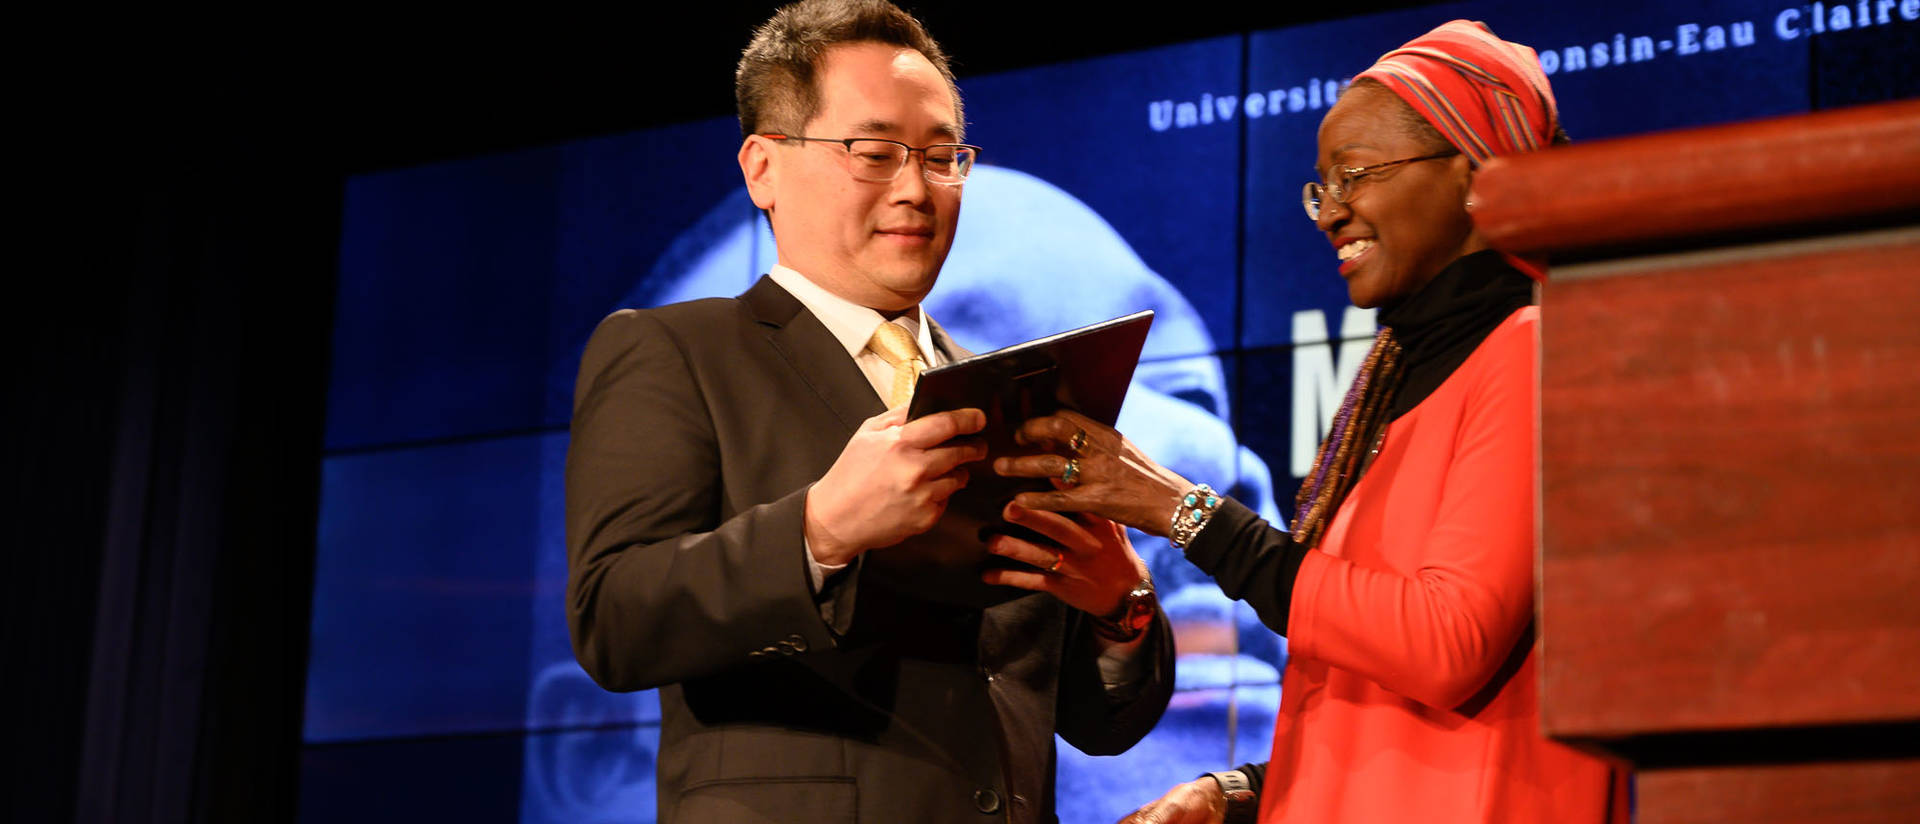 David Shih receives the MLK Social Justice Leadership Award on Feb. 5 from last year's recipient, Dr. Rose MArie Avin